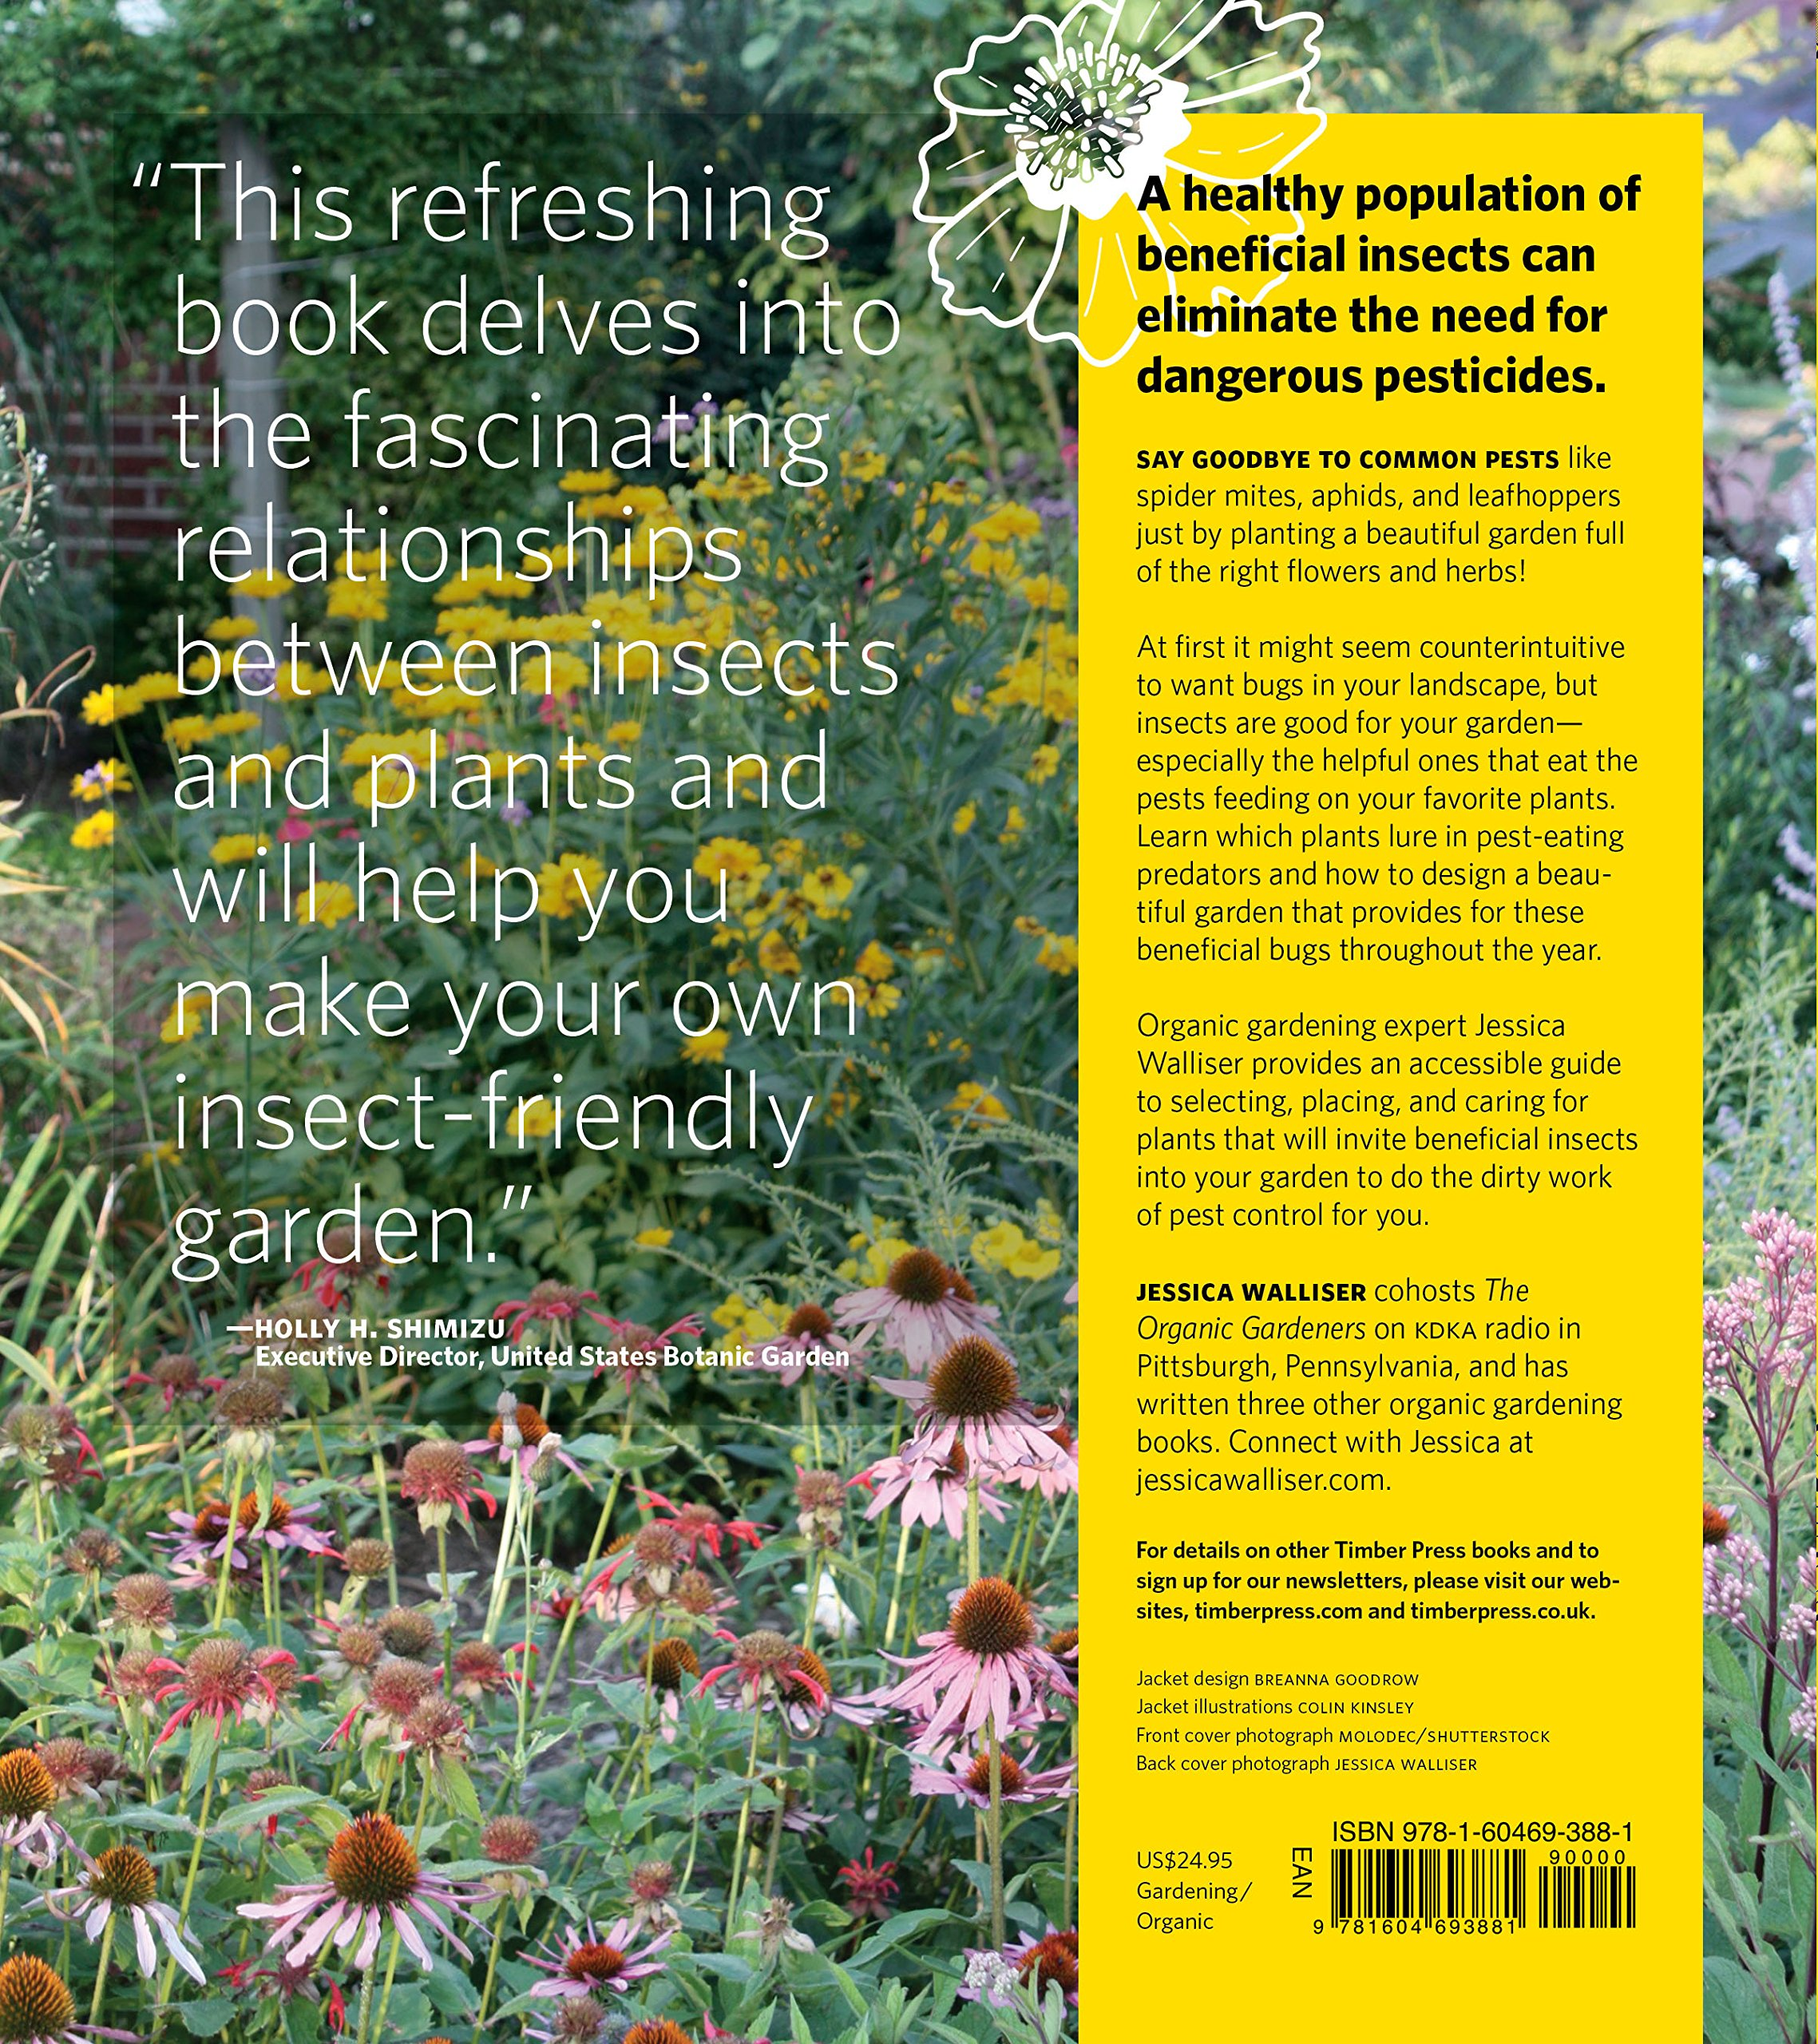 Attracting Beneficial Bugs to Your Garden: A Natural Approach to Pest Control by Timber Press